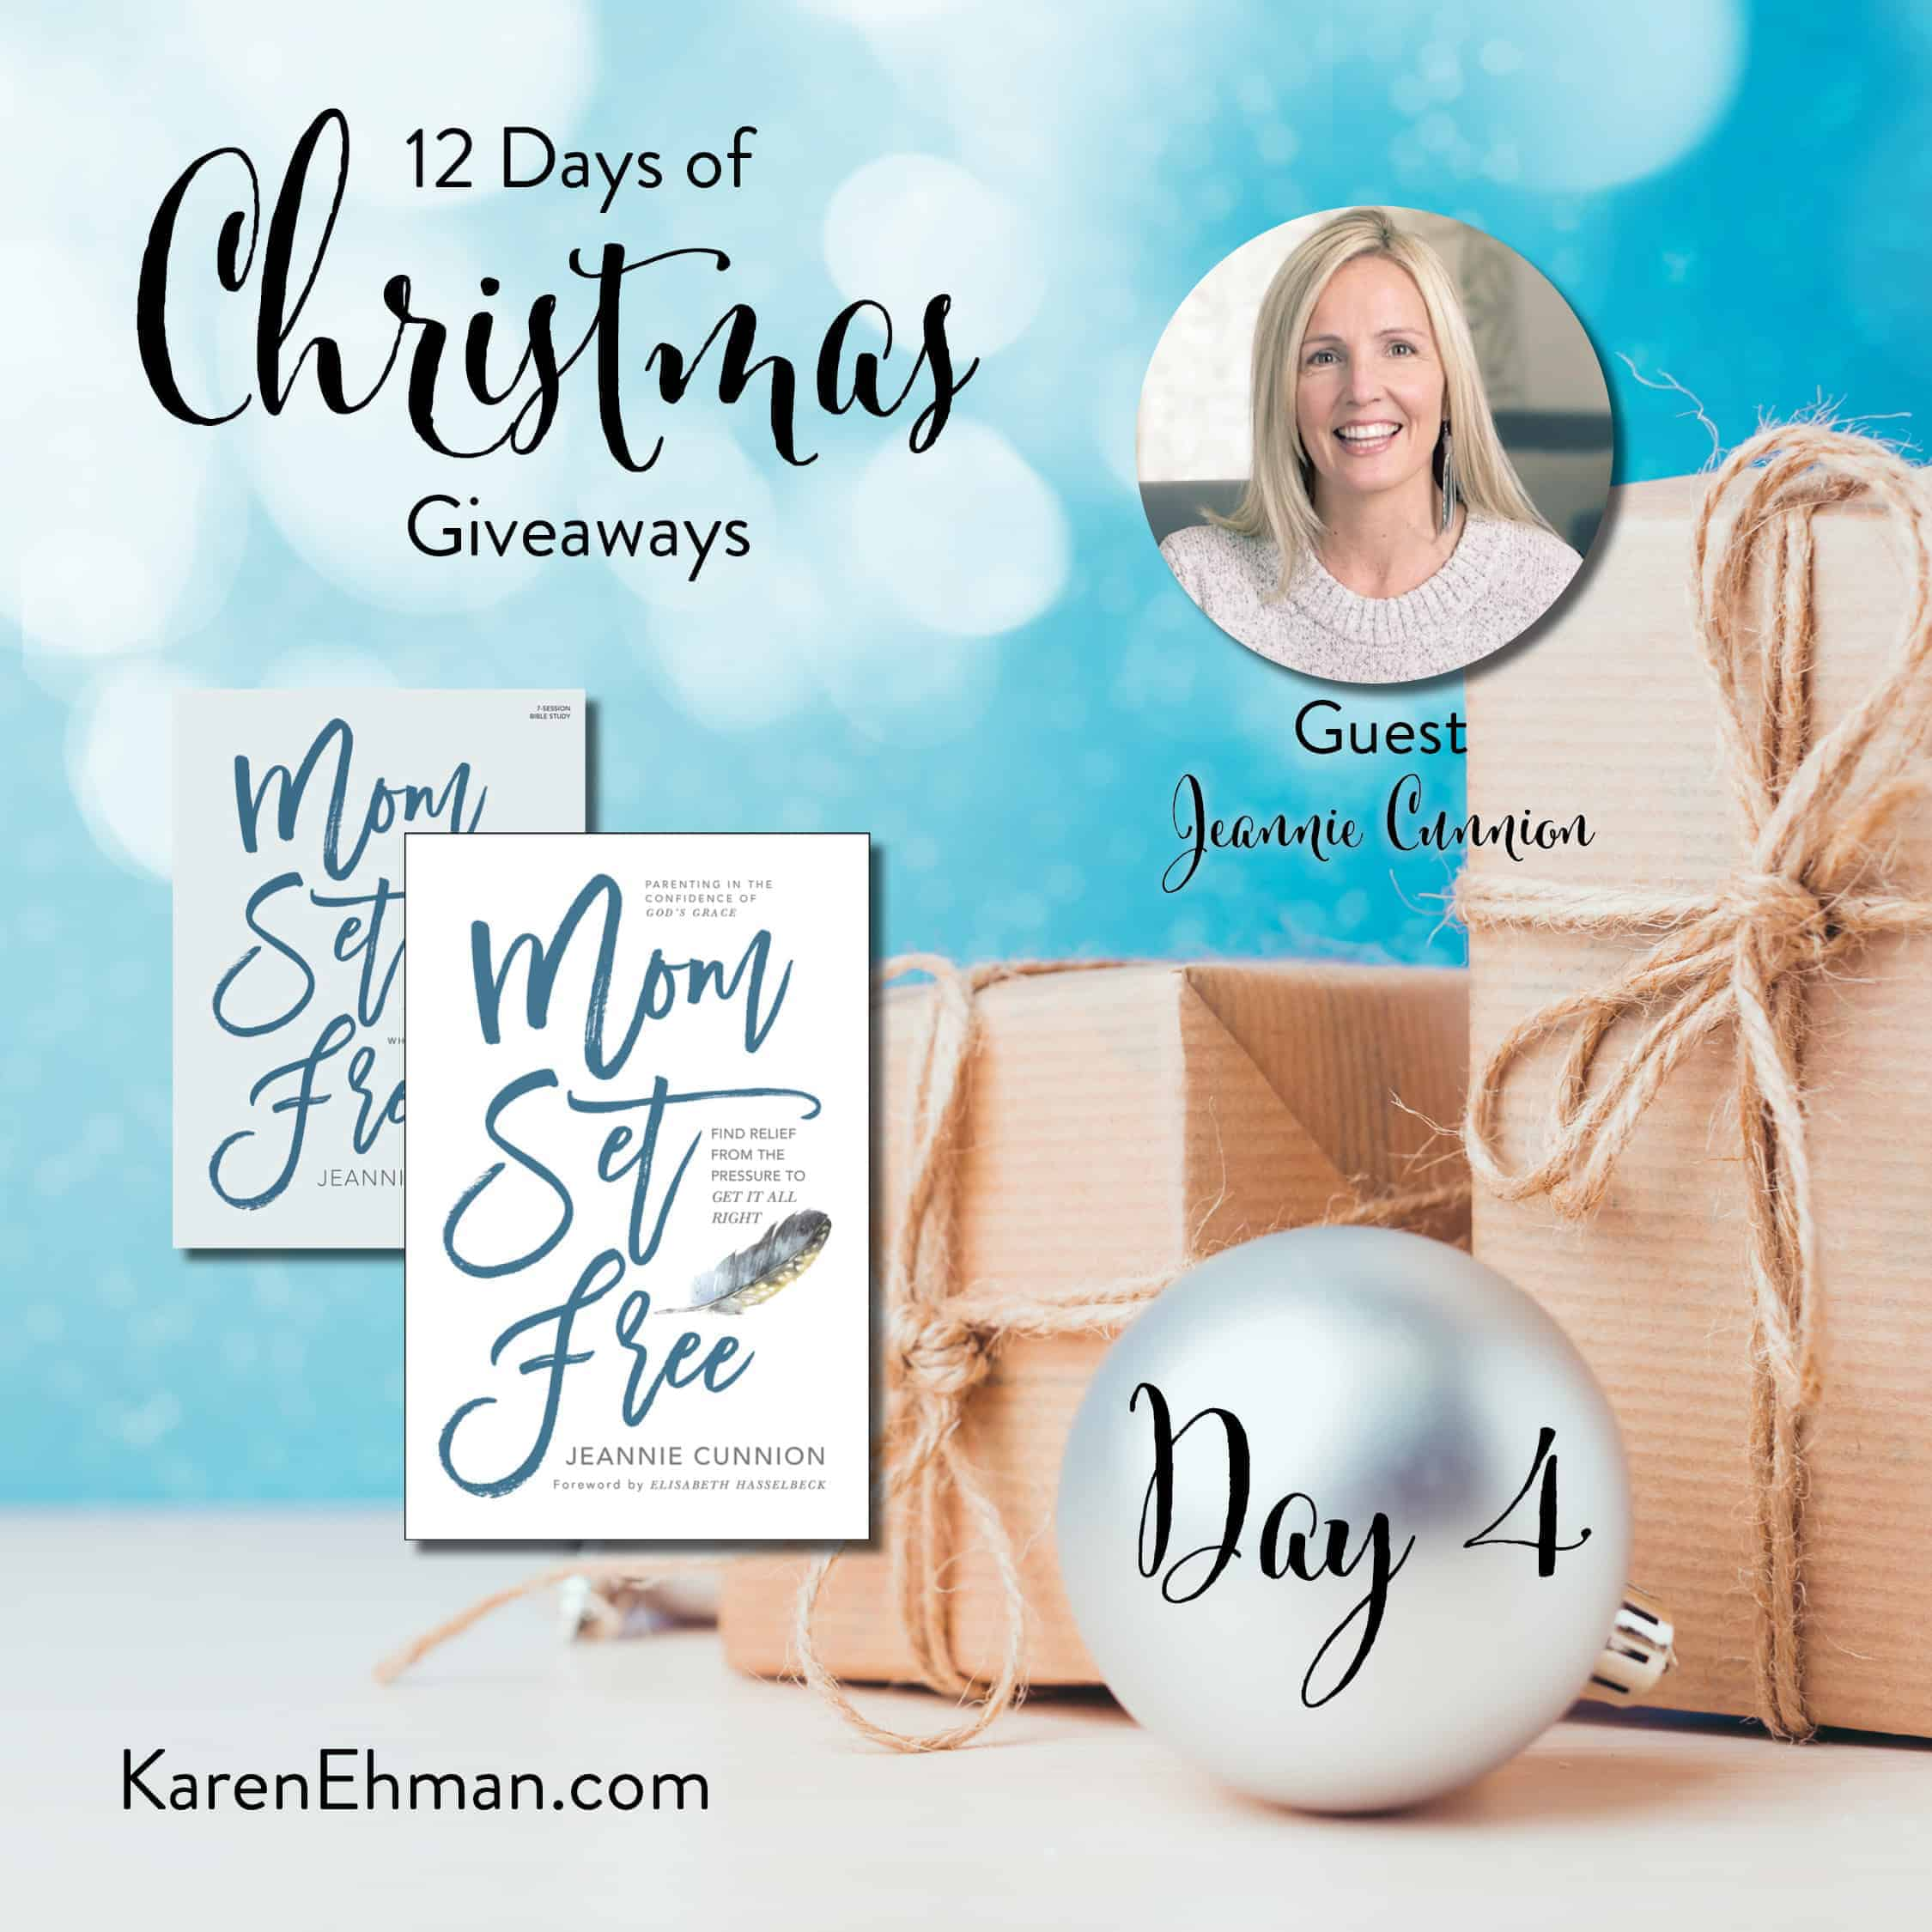 Day 4 of 12 Days of Christmas Giveaways (with Jeannie Cunnion)